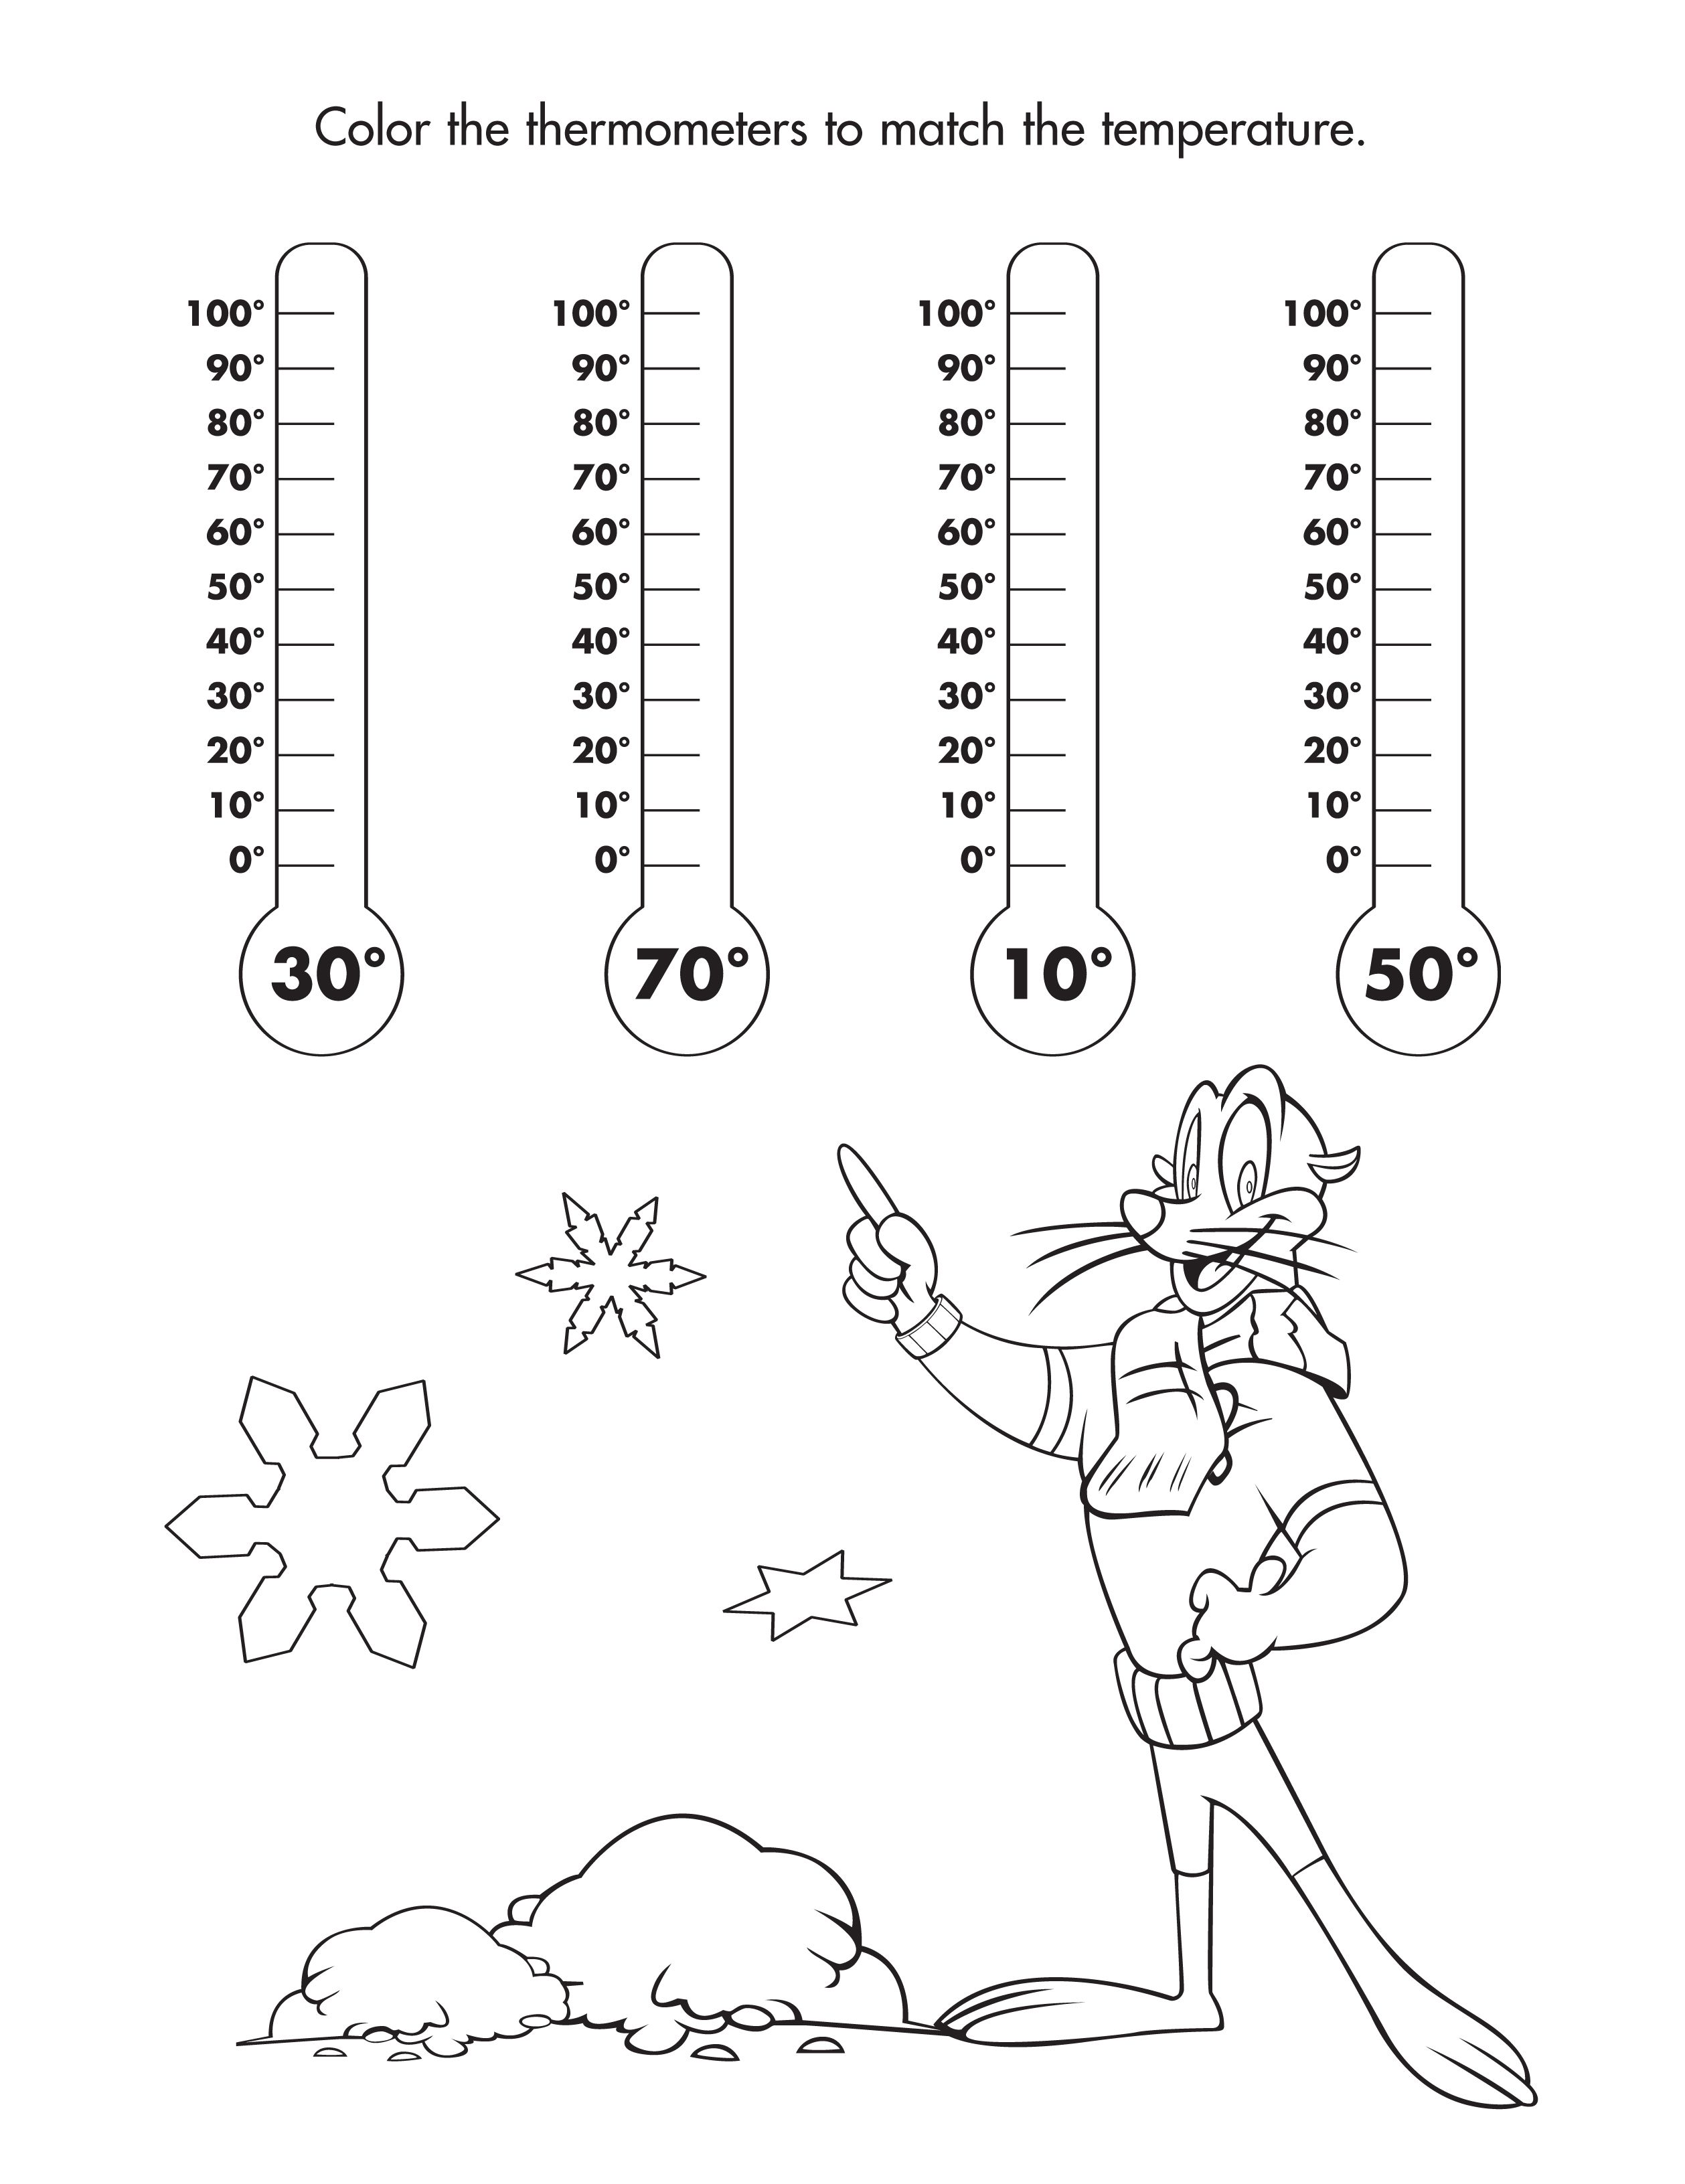 Color the thermometers with the correct temperature freeprintable coloring childsafety